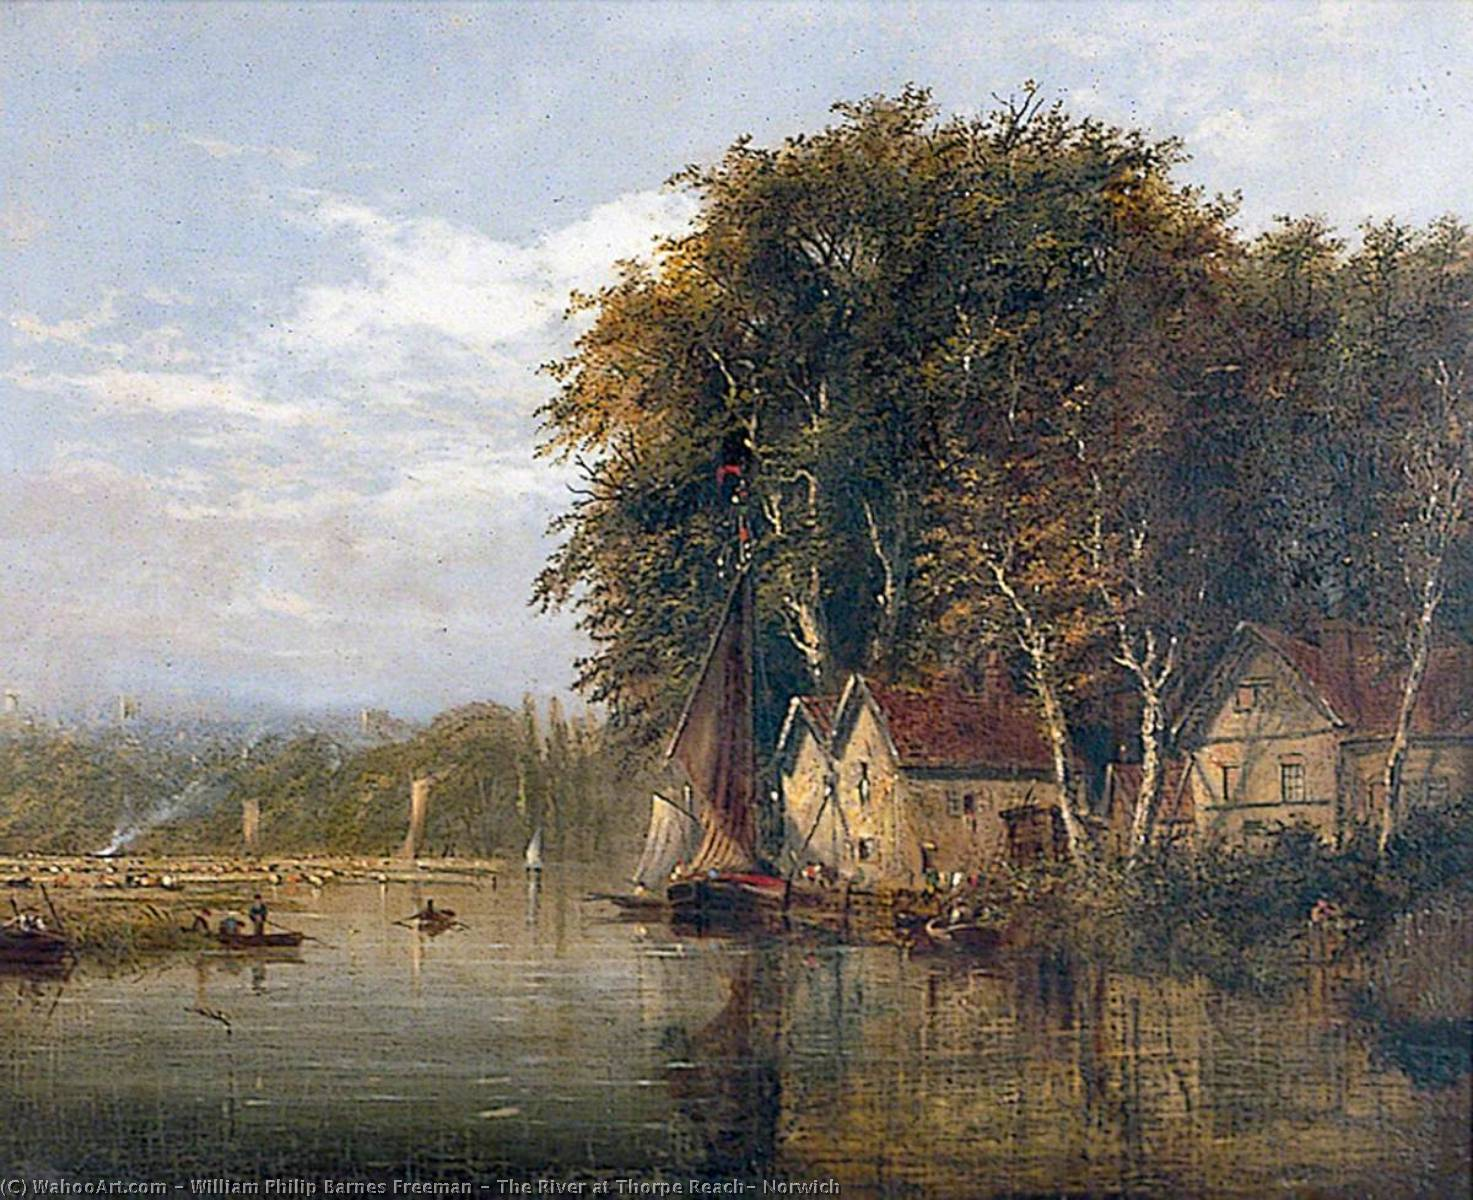 The River at Thorpe Reach, Norwich, Oil On Canvas by William Philip Barnes Freeman